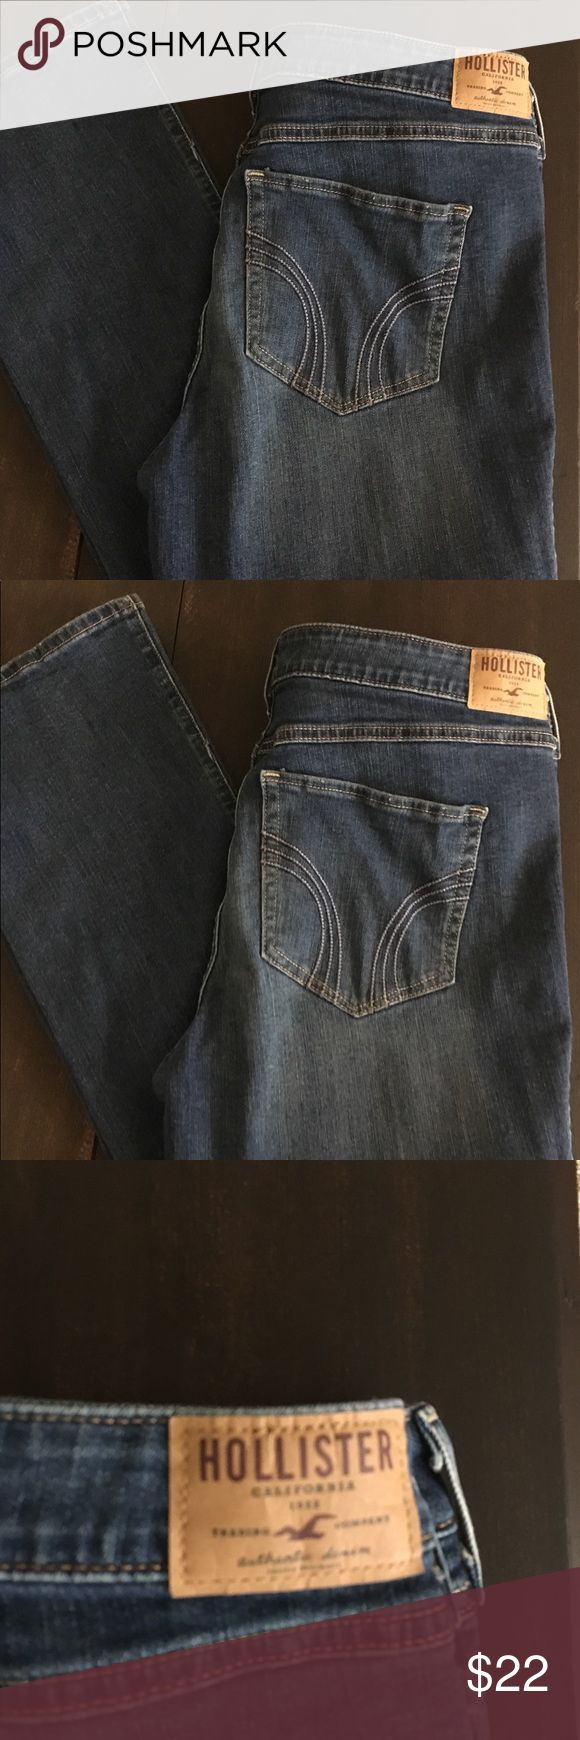 """Women's new Hollister boot cut jeans 32x 33 Women's Hollister Boot cut Jeans  15R. Waist 32"""" Length 33"""". Brand new still with tags.  Fast shipping 🏃🏼♀️🏃🏼♀️ Hollister Jeans Boot Cut"""